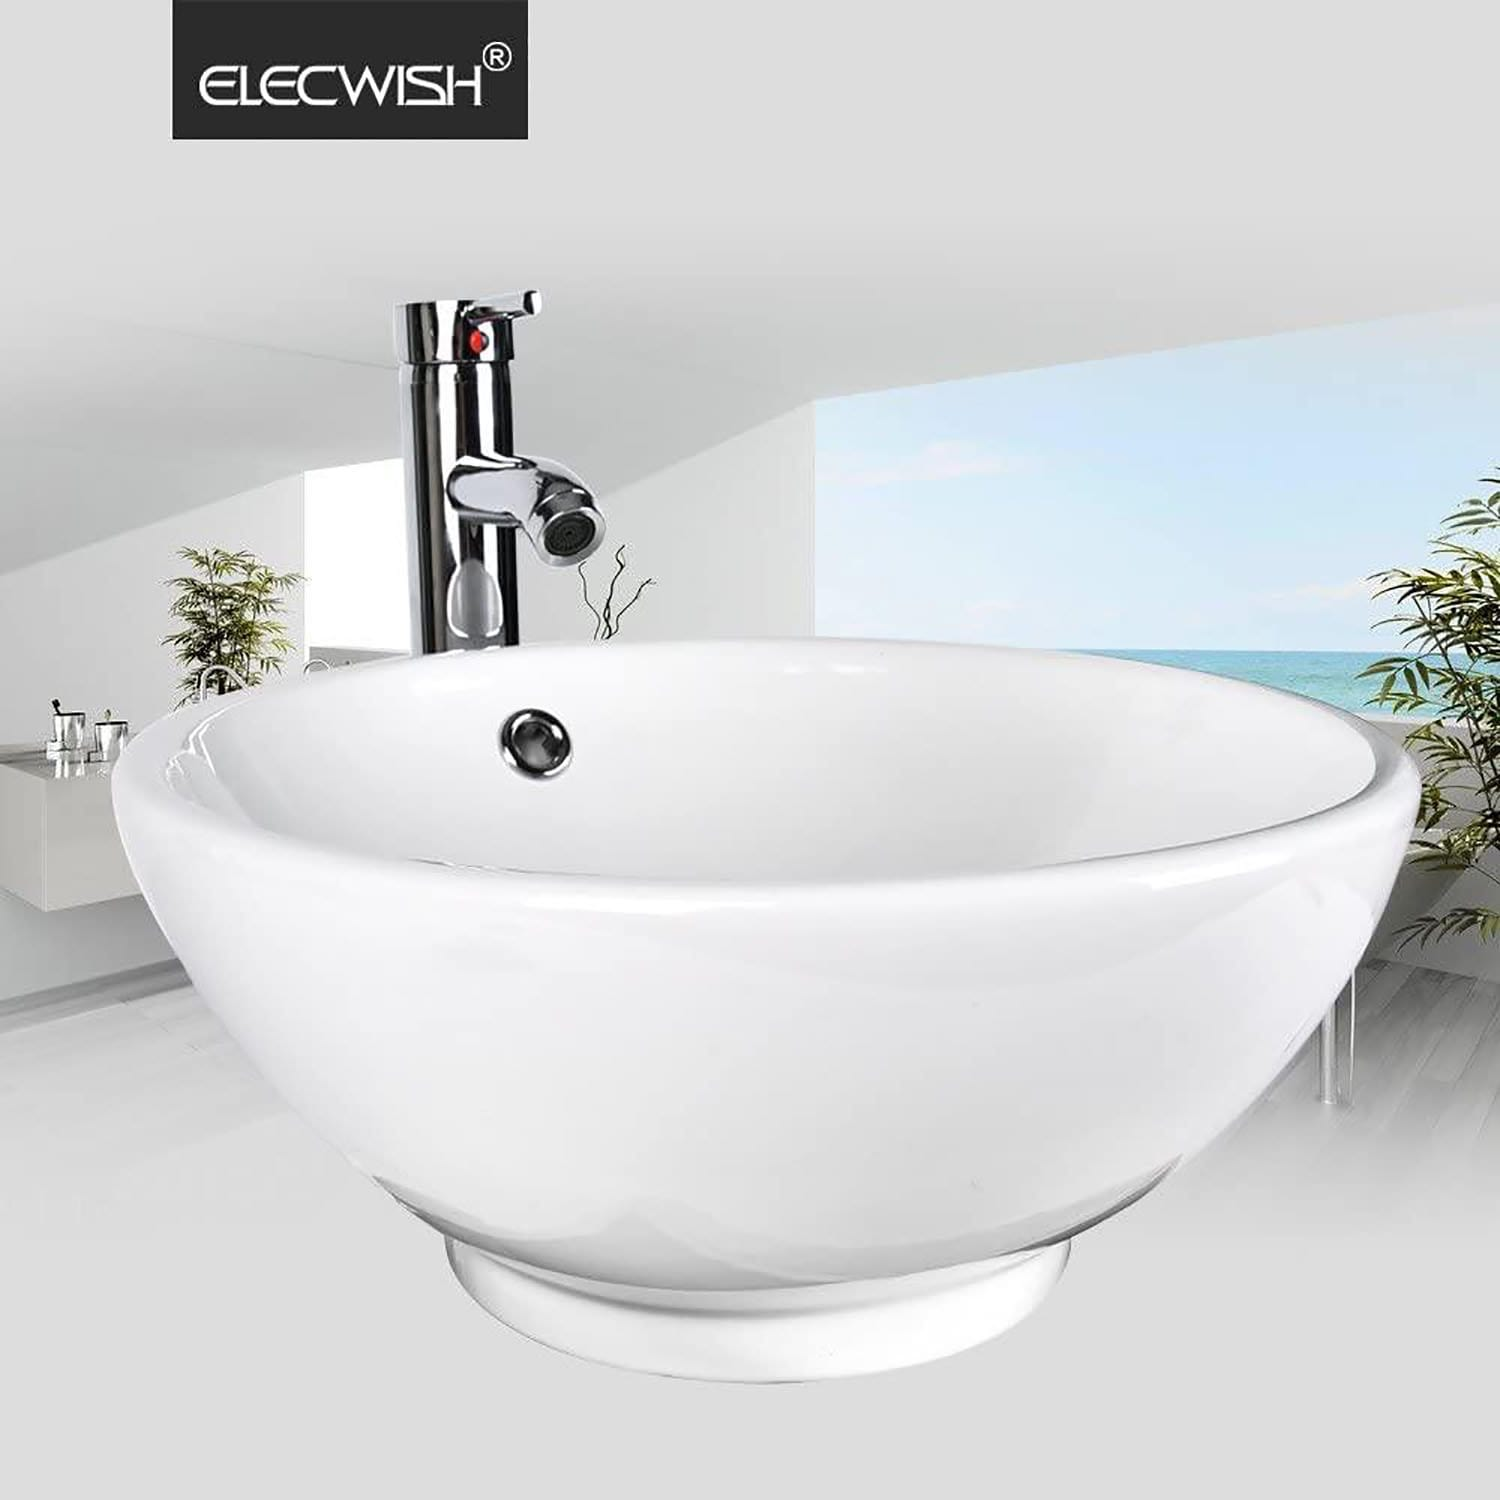 PULUOMIS  Round Ceramic Porcelain Bathroom Vessel Sink